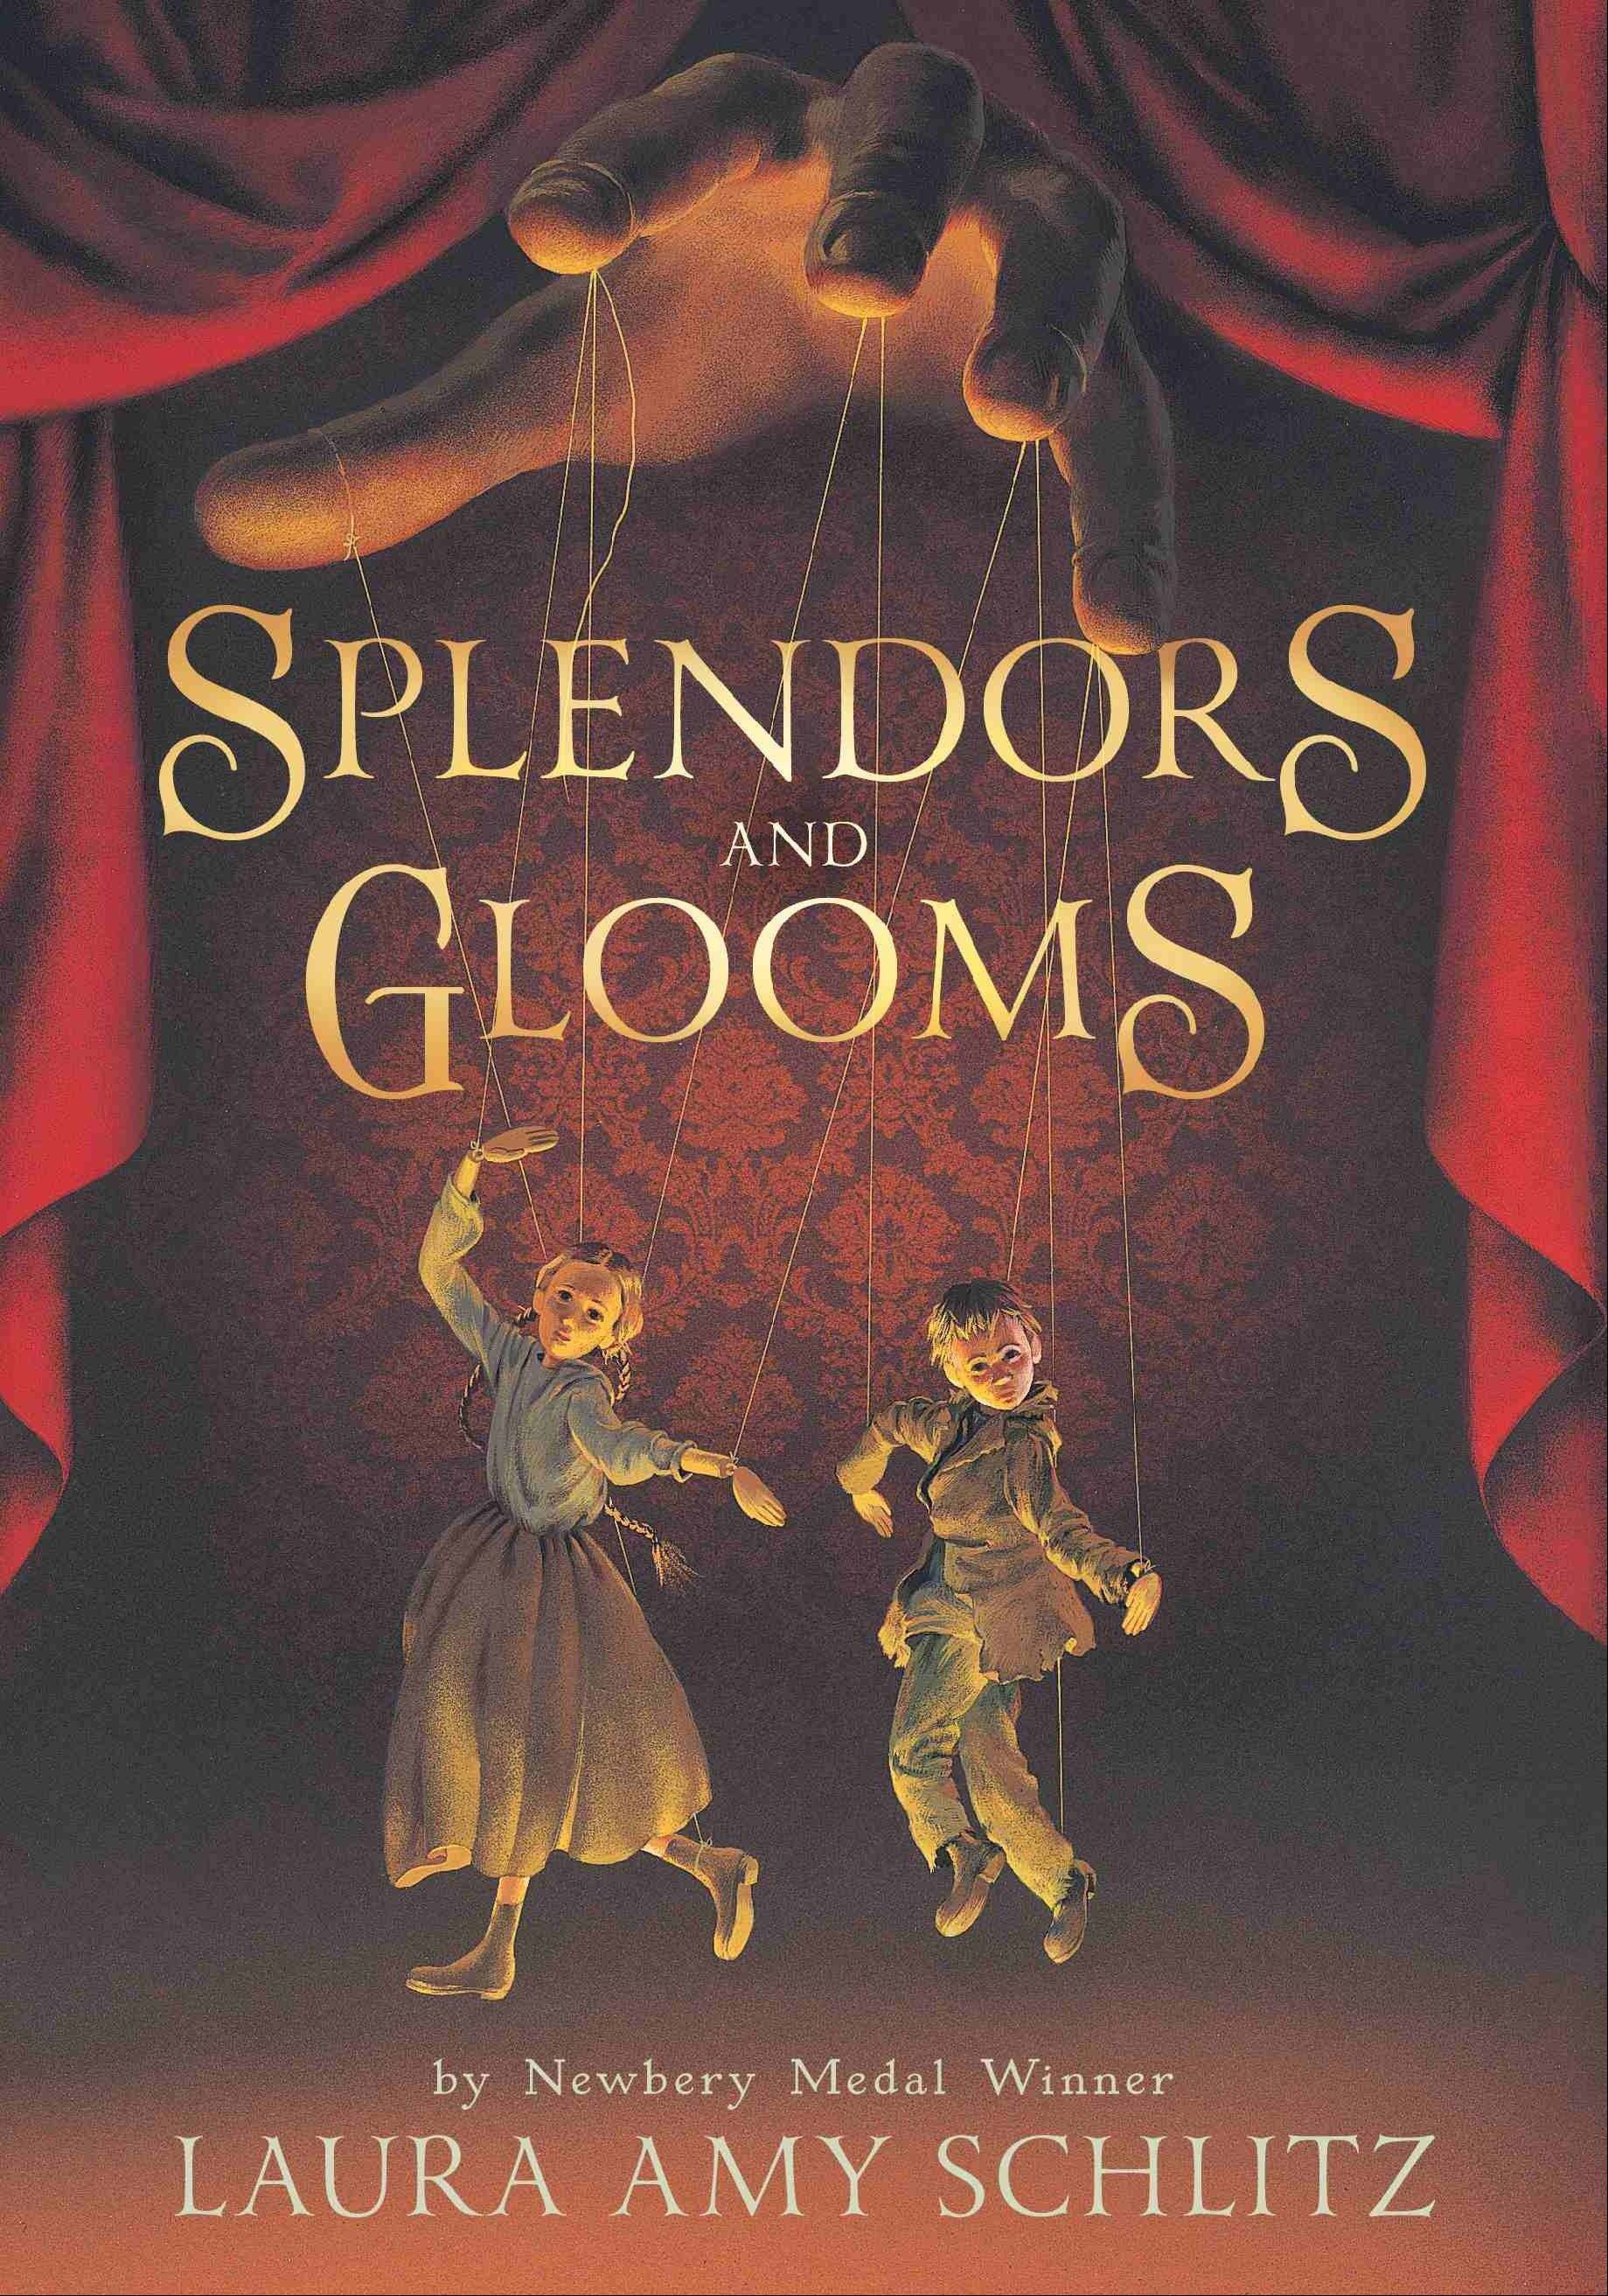 �Splendors and Glooms� by Laura Amy Schlitz (2012, Candlewick Press) $17.99, 400 pages.